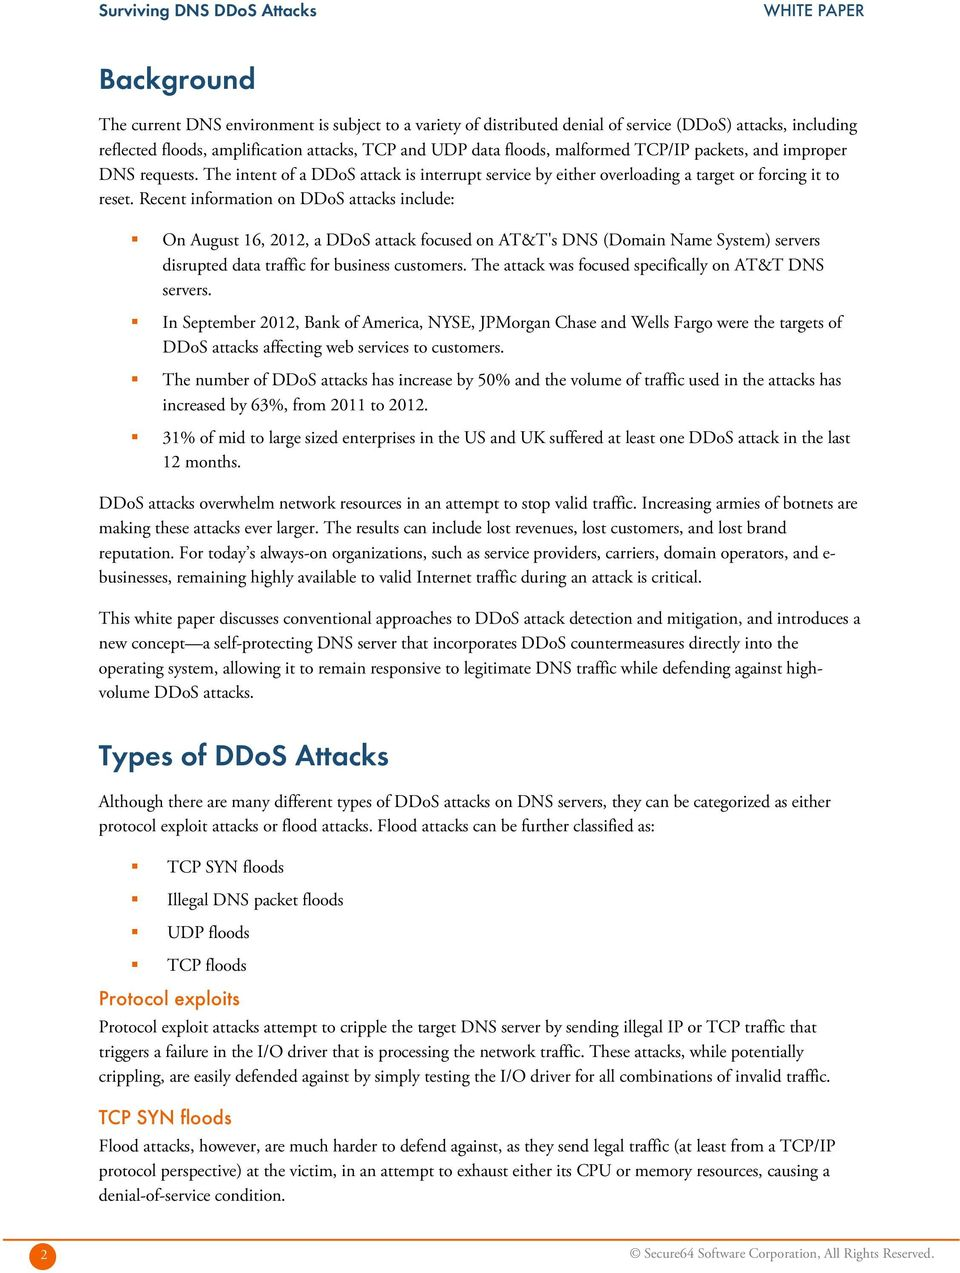 Recent information on DDoS attacks include: On August 16, 2012, a DDoS attack focused on AT&T's DNS (Domain Name System) servers disrupted data traffic for business customers.